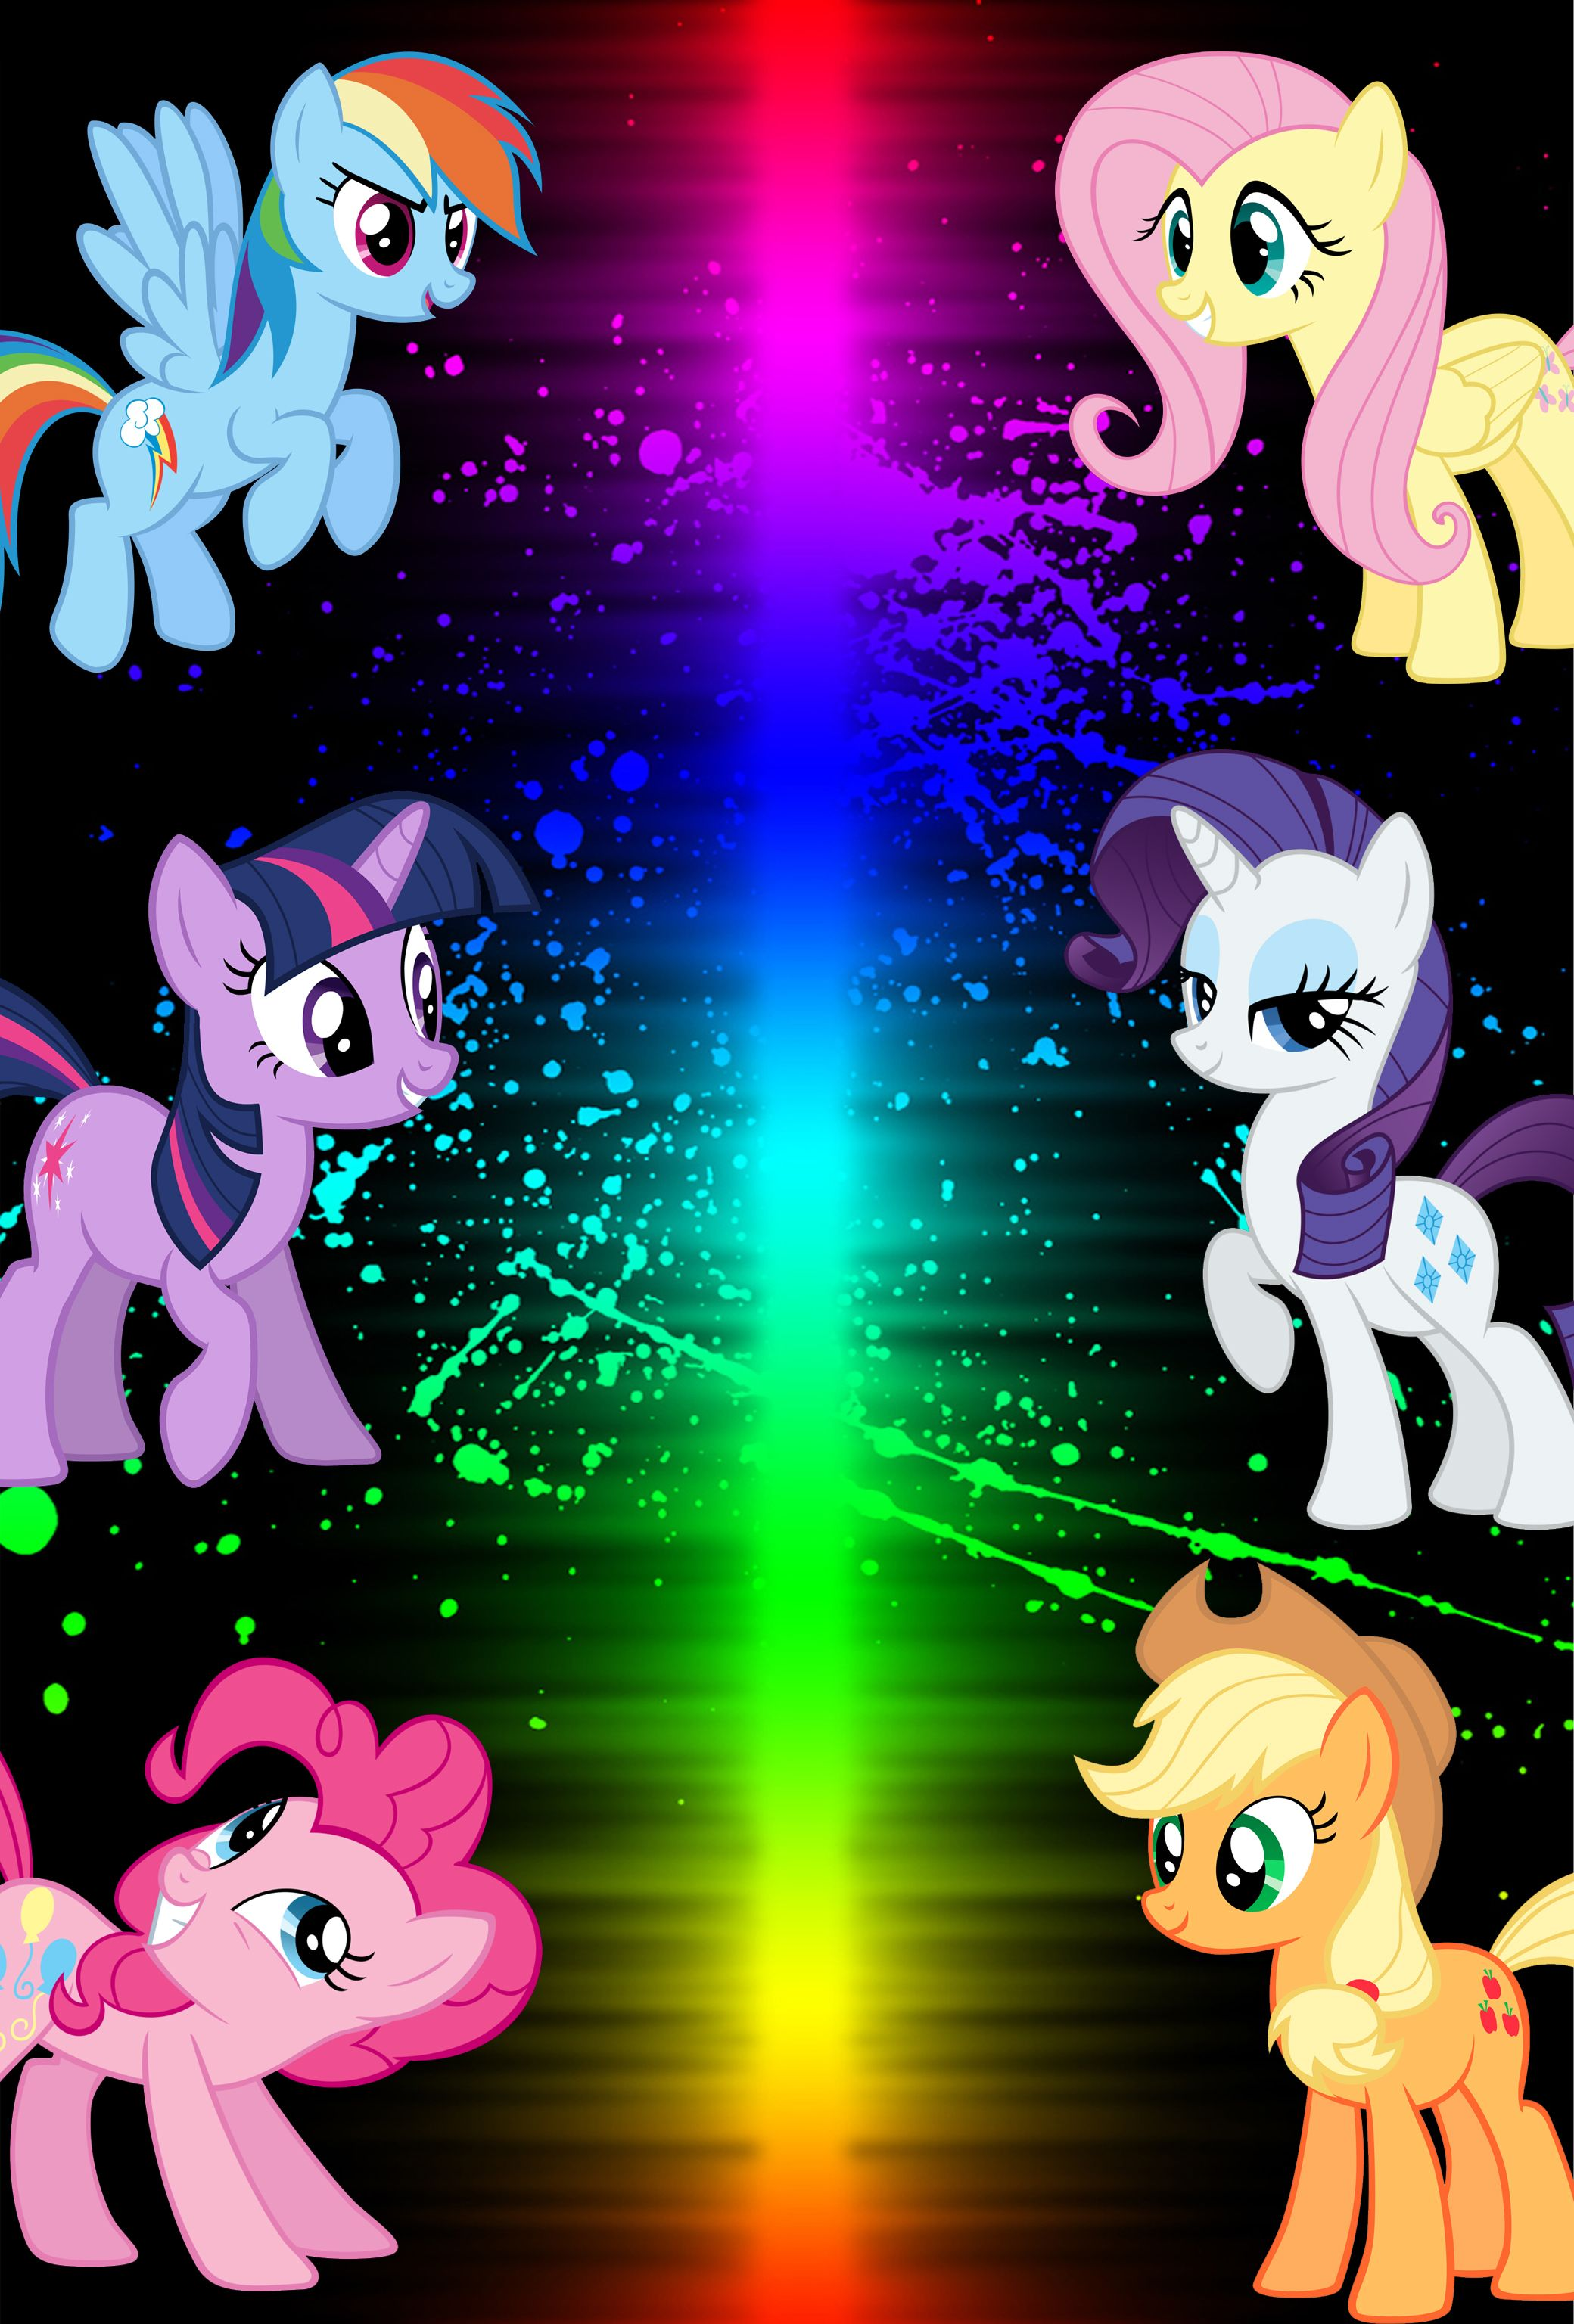 mlp iphone wallpaper - wallpapersafari | mlp | pinterest | mlp